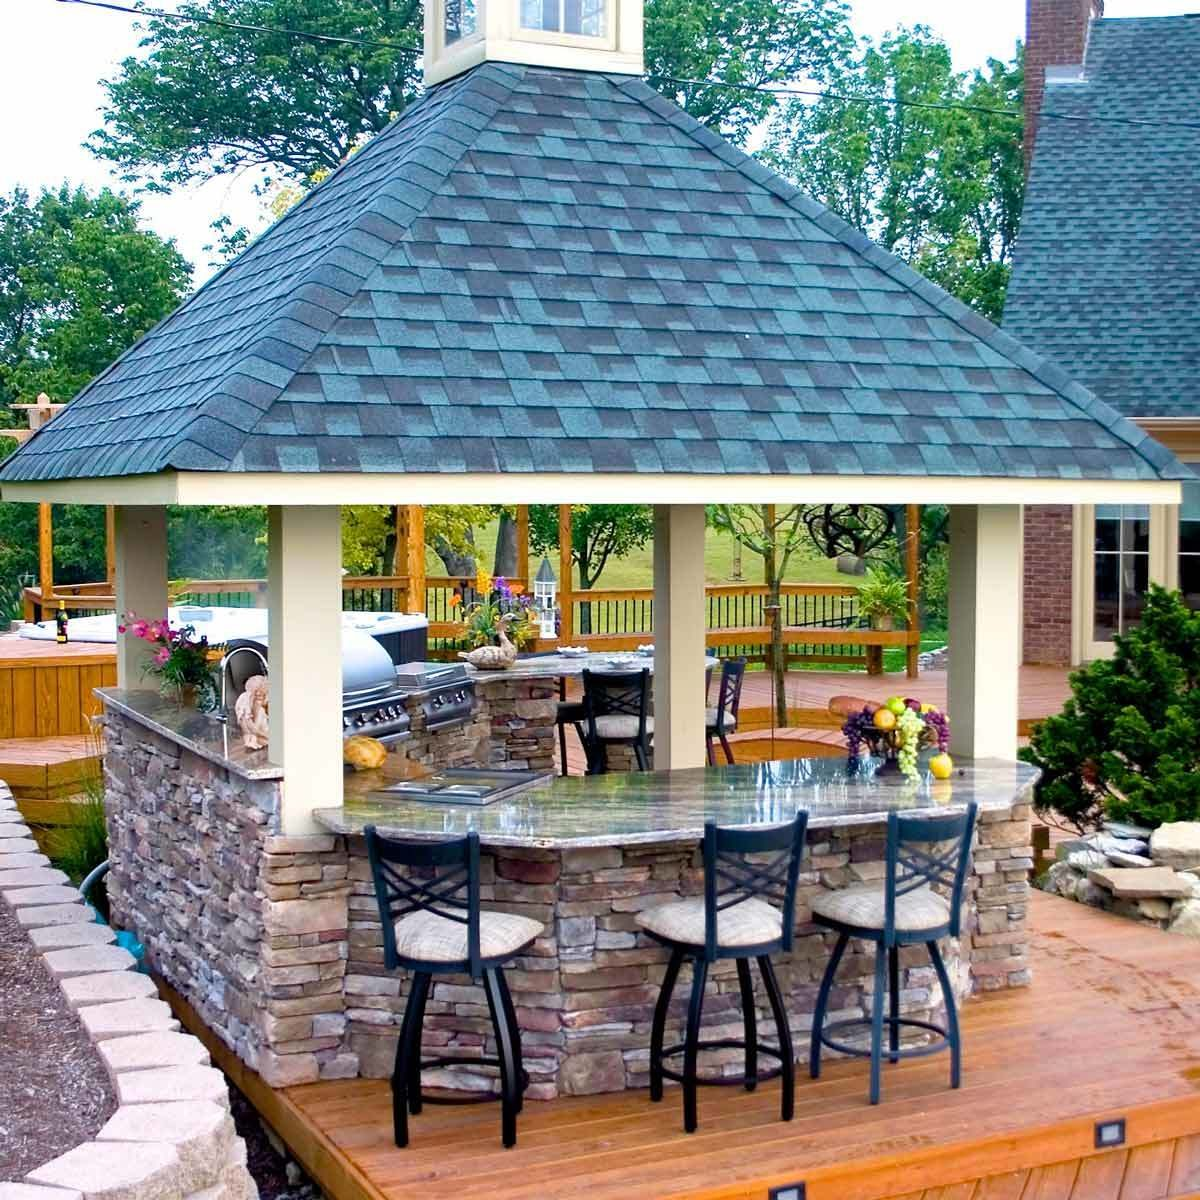 Combination Outdoor Kitchen and Bar